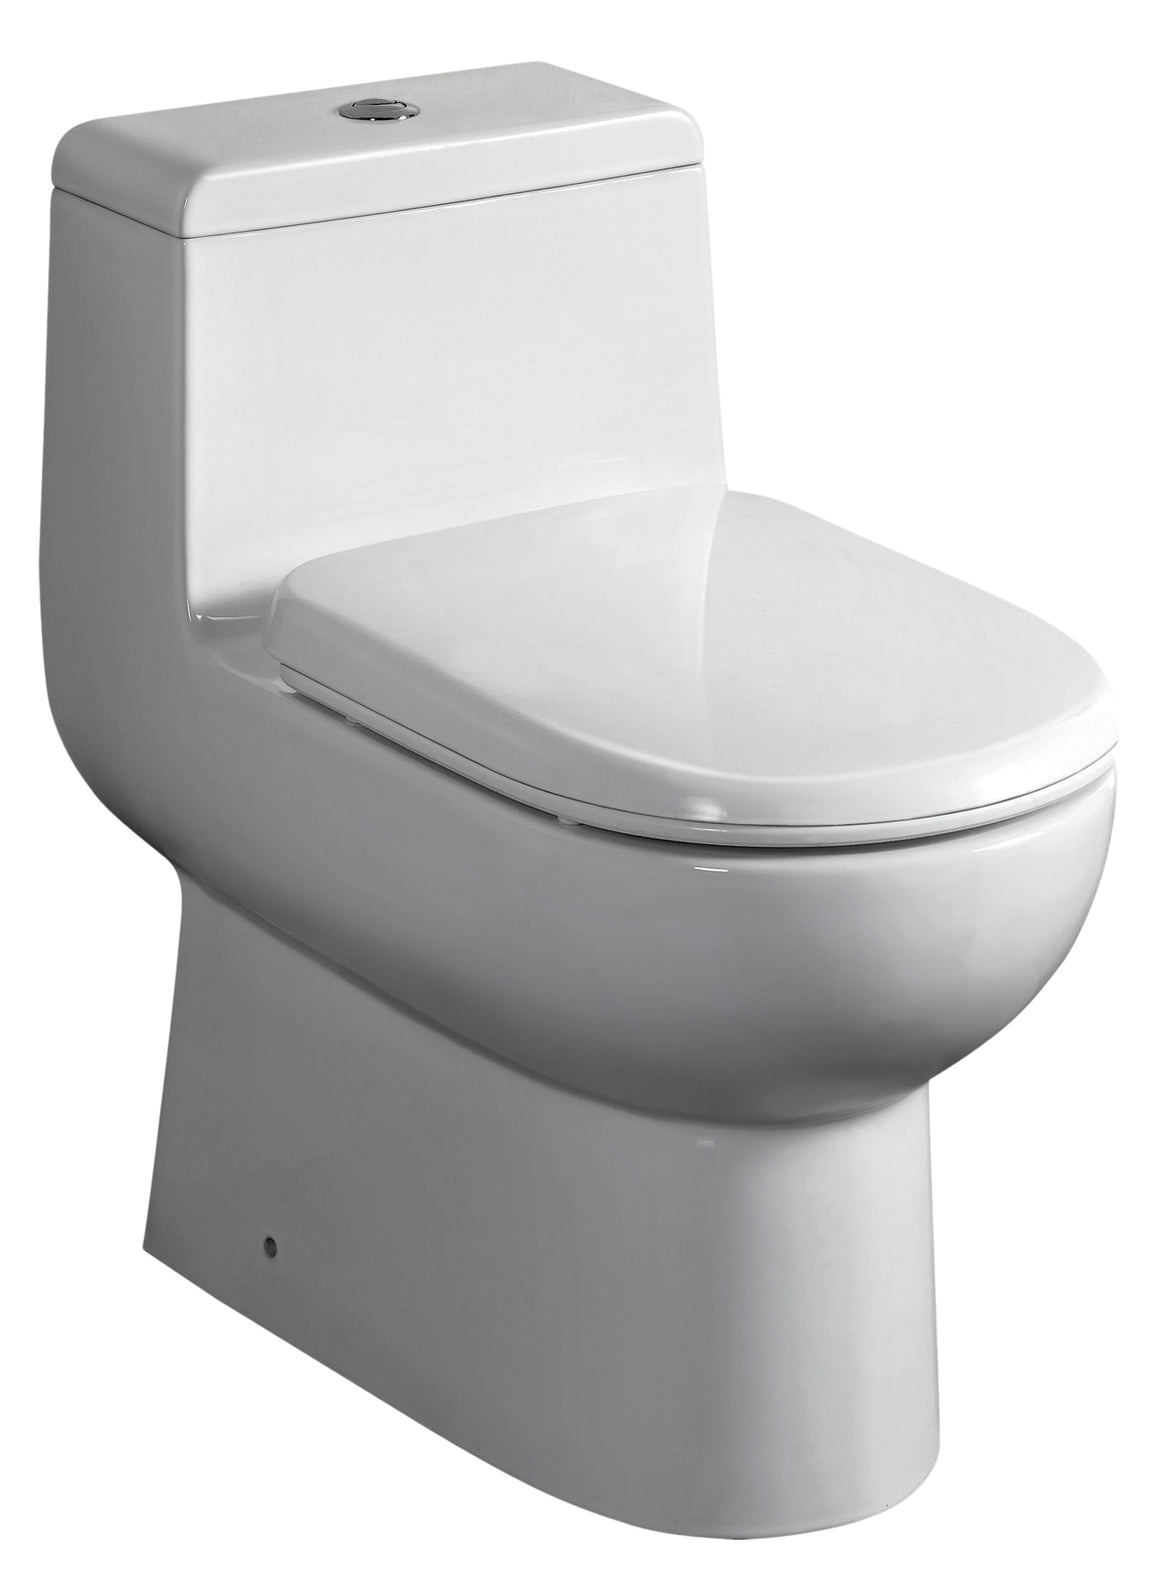 One piece dual flush eco-friendly toilet